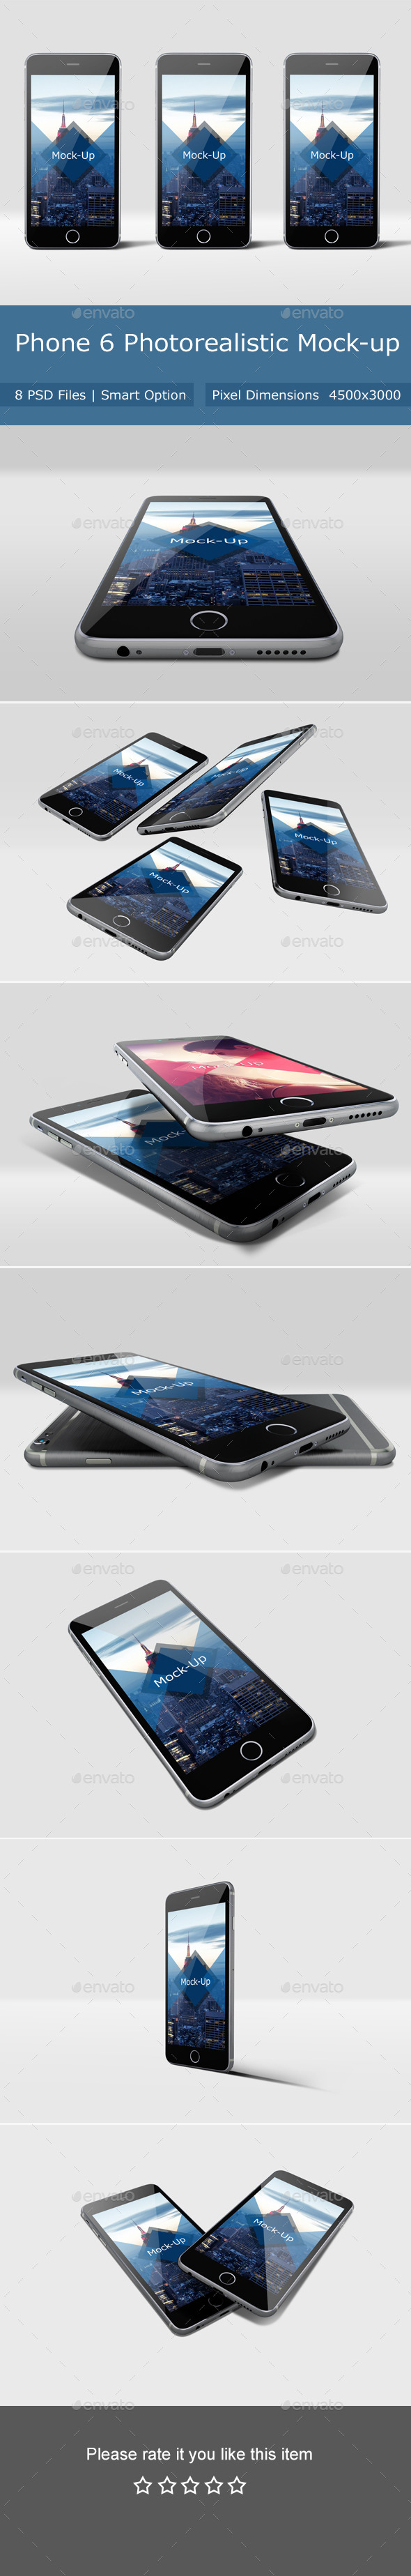 Phone 6 Photorealistic Mockup - Mobile Displays